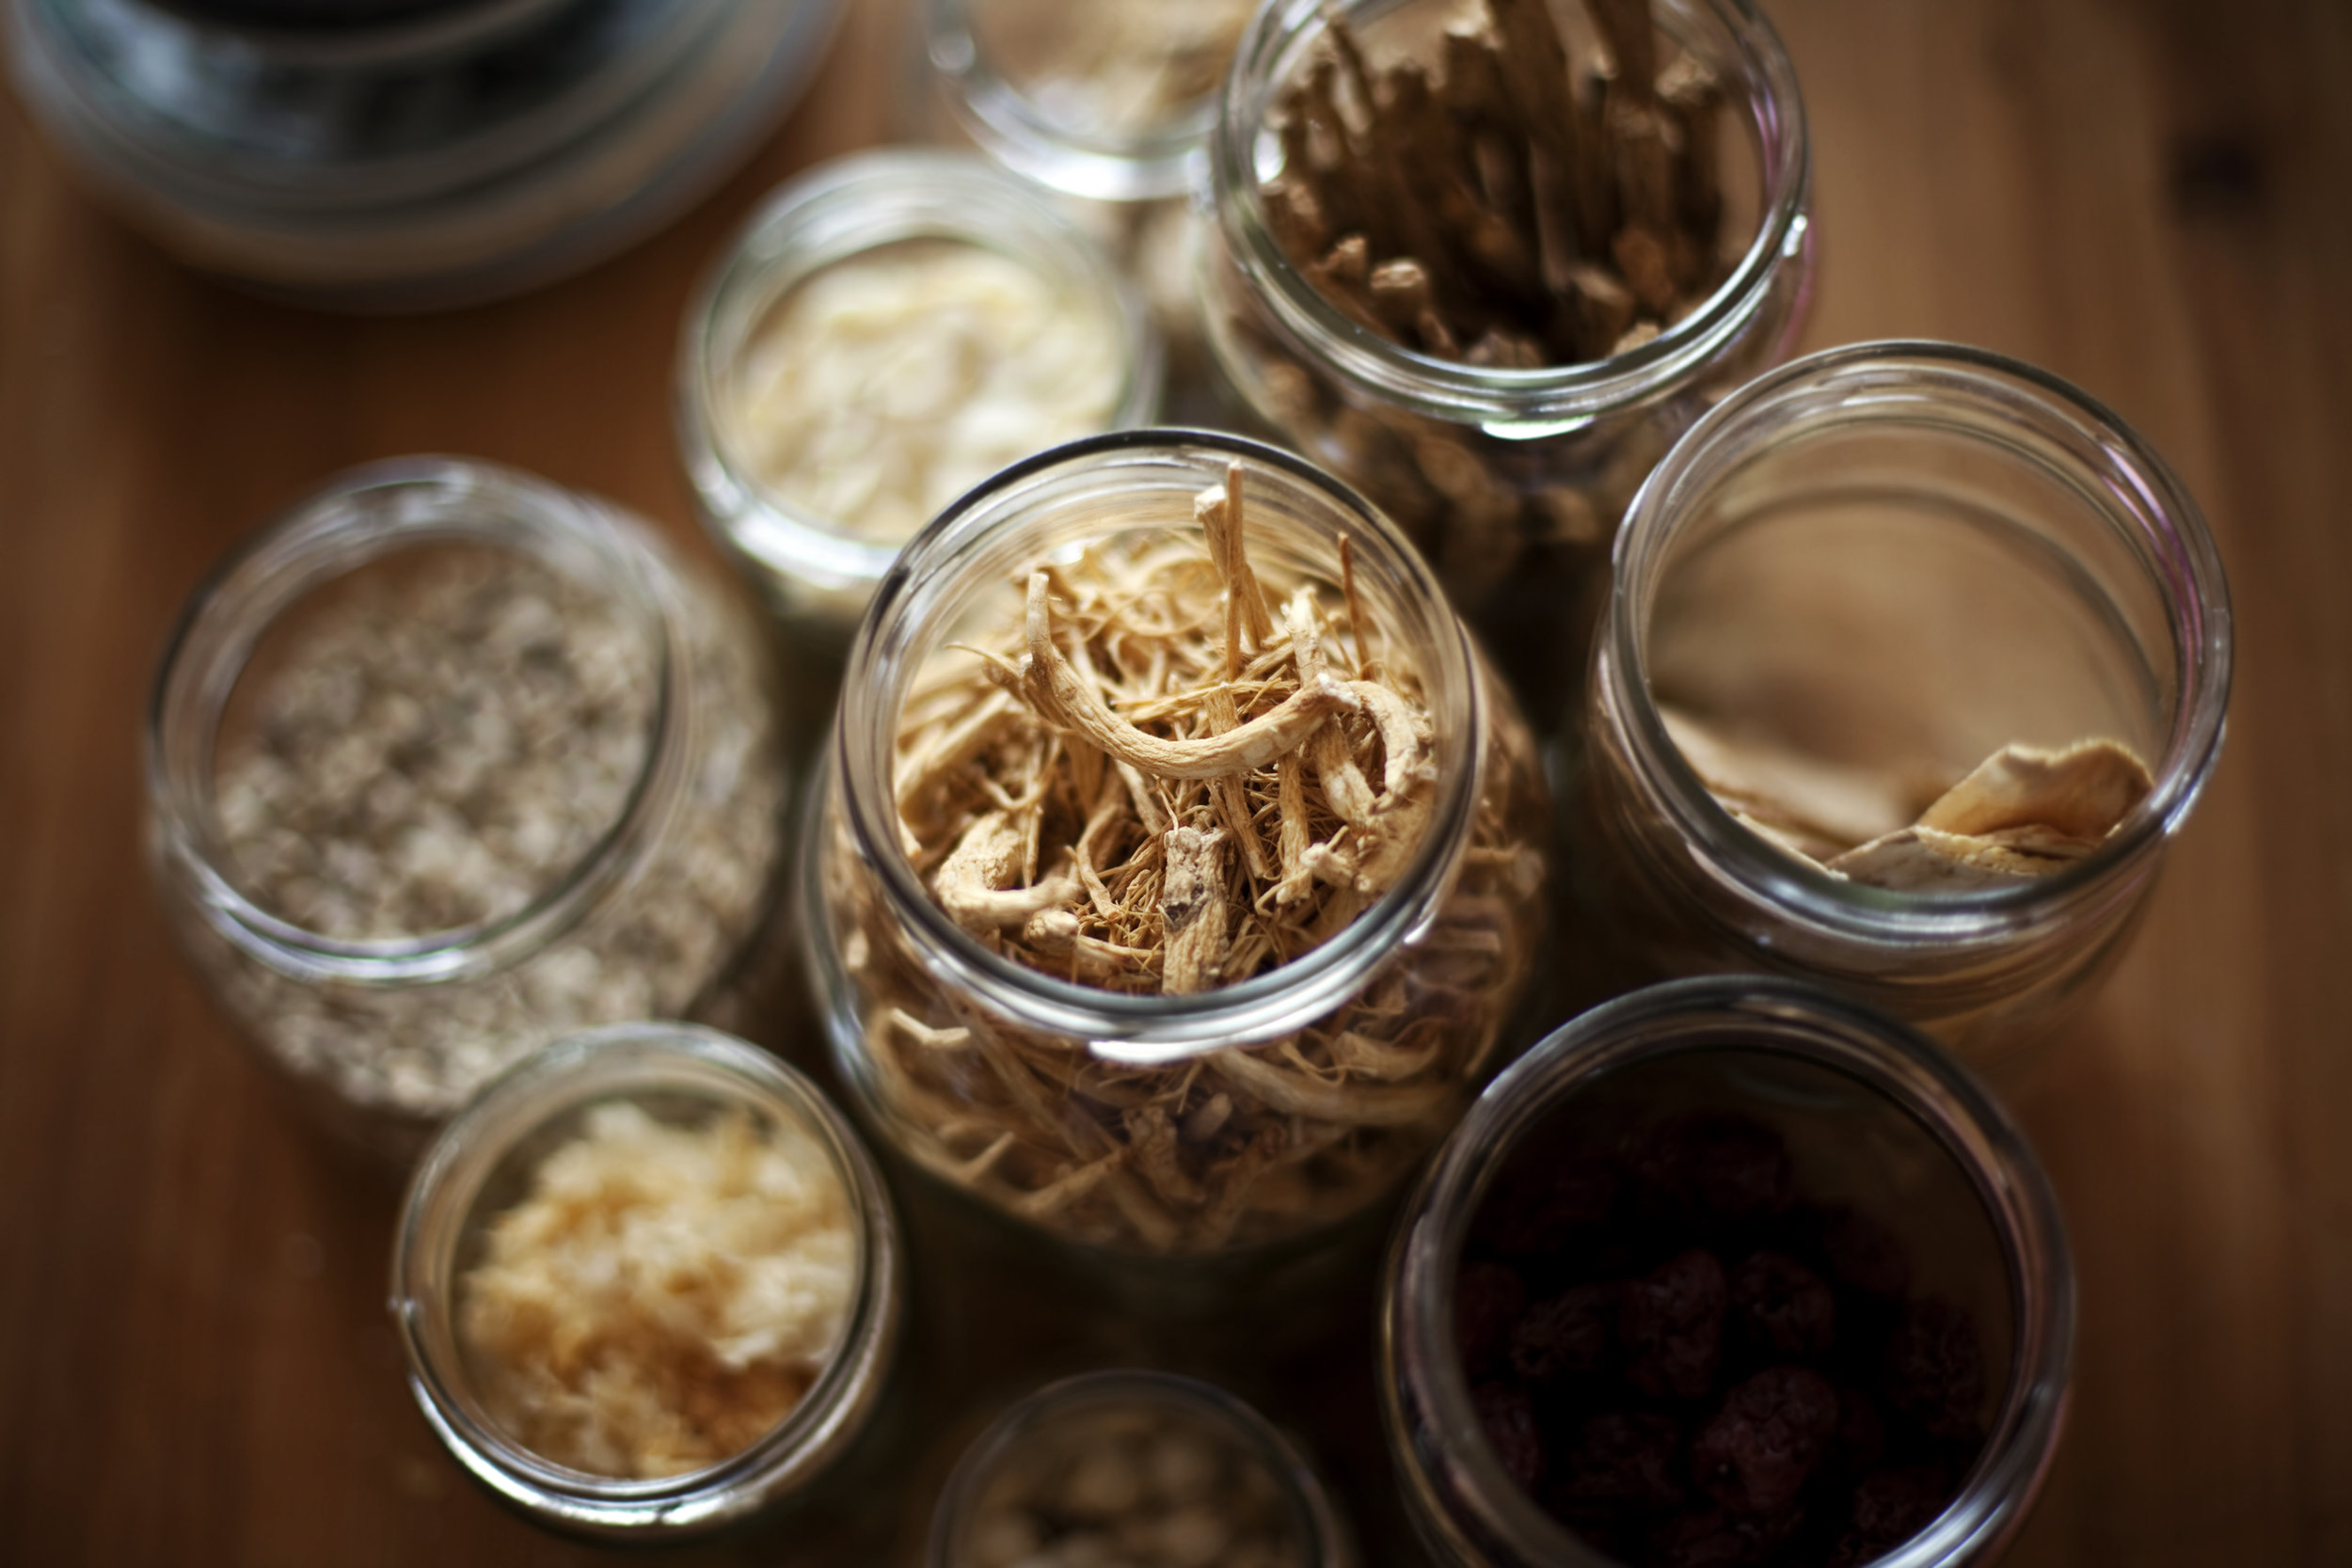 herbs & diet - · Ancient medicine, modern practices and research· Natural, safe, and effective· Holistic and individually tailored